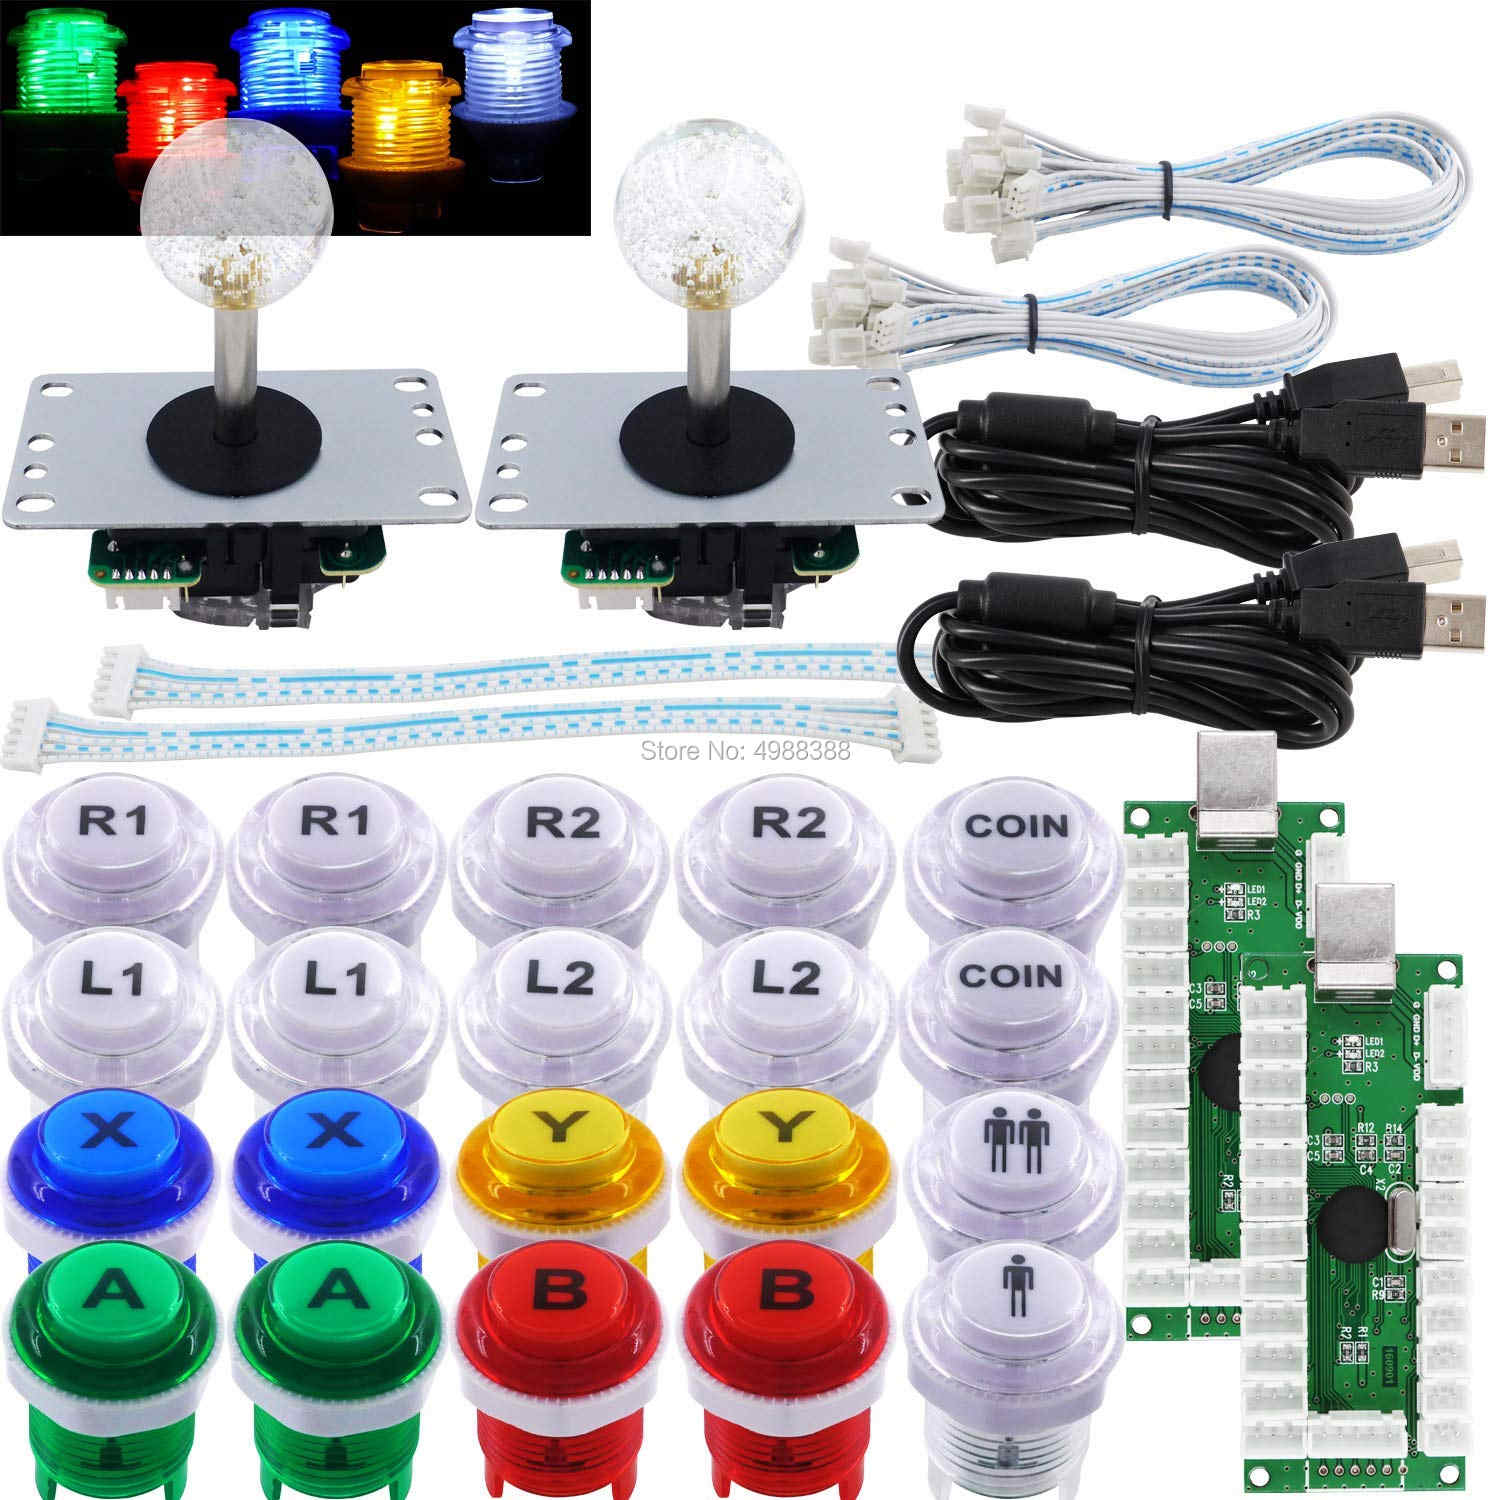 Arcade joystick 2 Player DIY Kit LED Tasten Mikroschalter 8 Weg Joystick USB Encoder Kabel für PC MAME Raspberry Pi